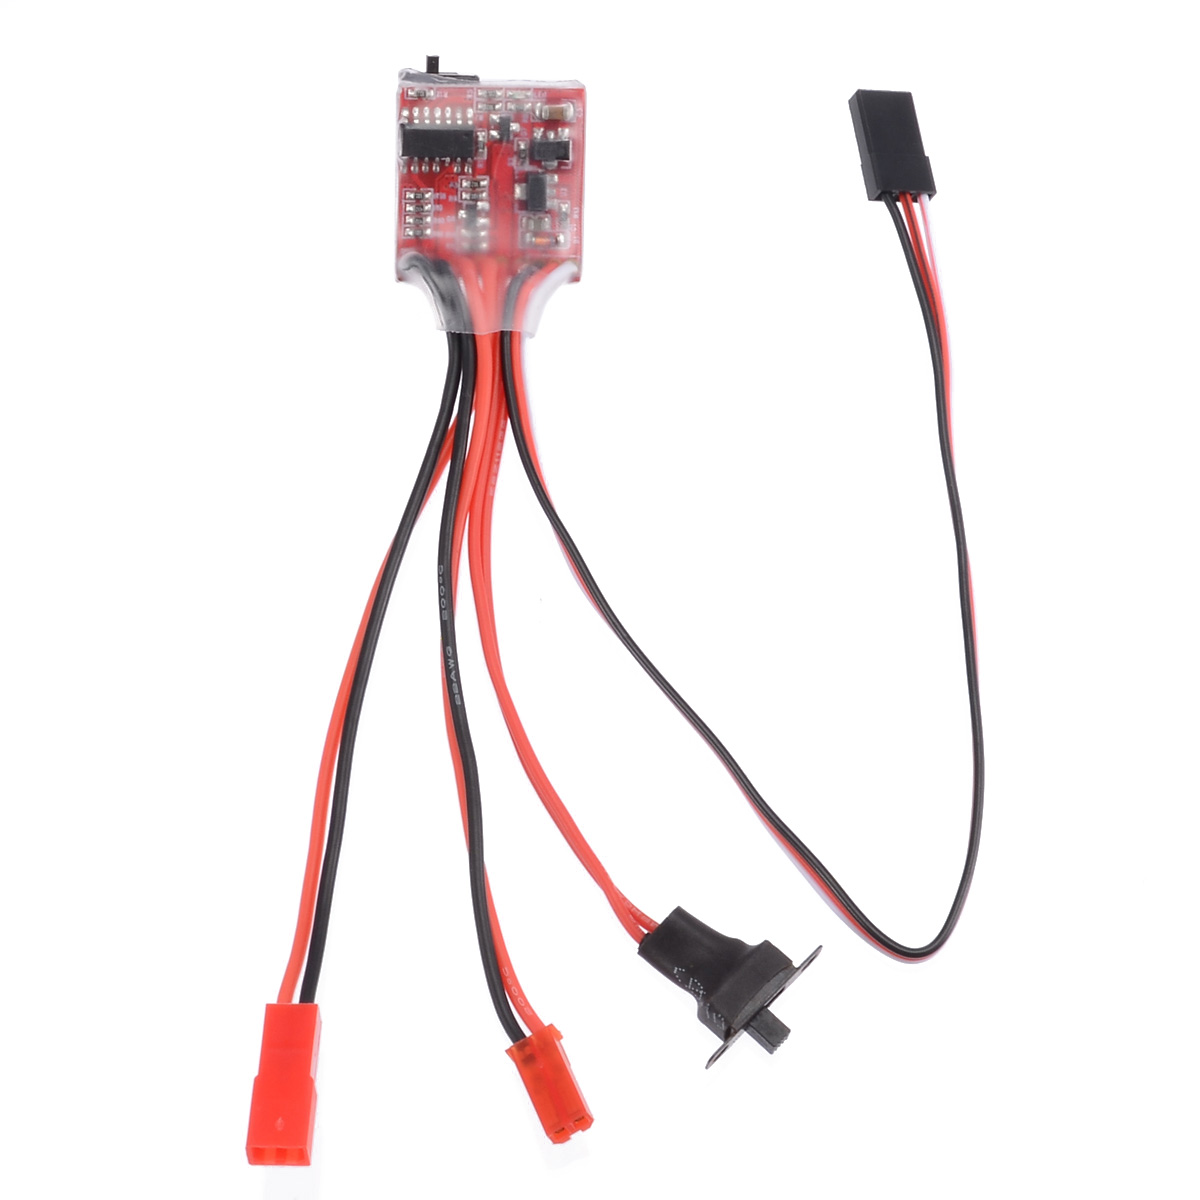 New Sale <font><b>30A</b></font> 4-8V Mini <font><b>Brushed</b></font> Electric Speed Controller <font><b>ESC</b></font> Brush Electronic Motor Speed Controller For RC Car image